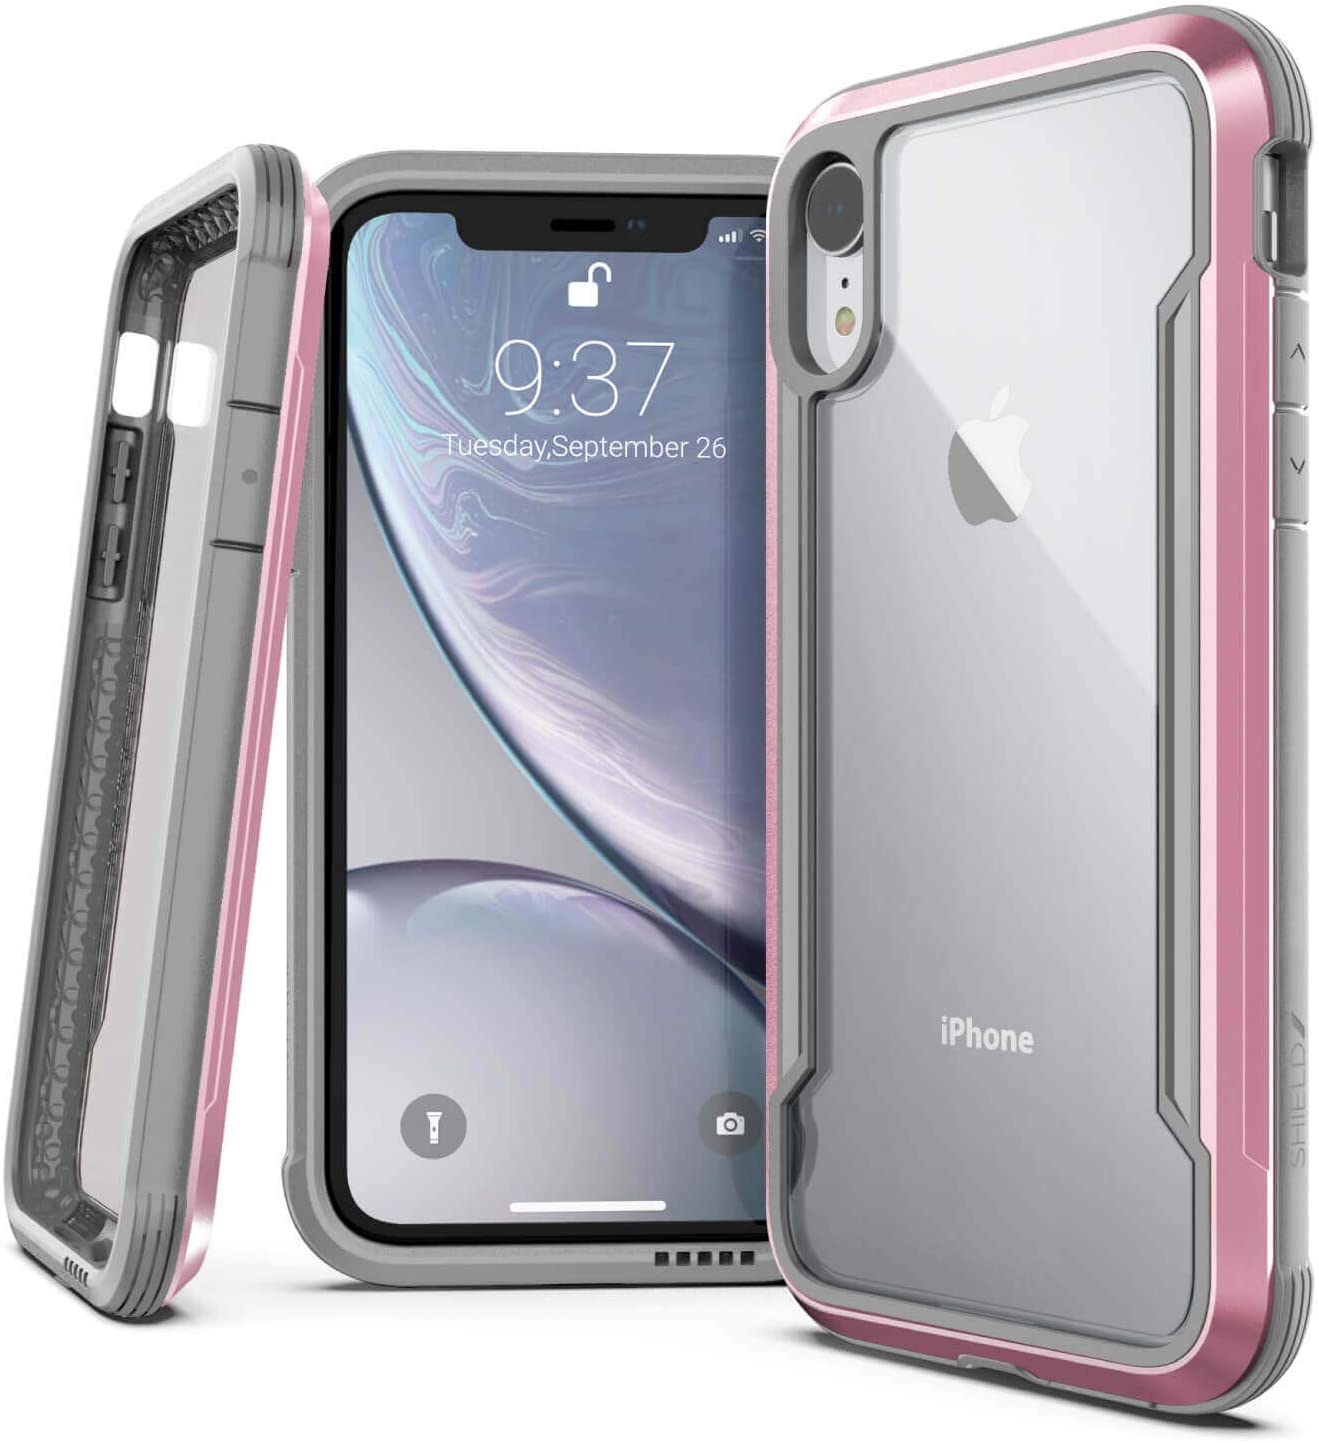 Raptic Shield, Compatible with Apple iPhone XR (Formerly Defense Shield) - Military Grade Drop Tested, Anodized Aluminum, TPU, and Polycarbonate Protective Case for Apple iPhone XR, (Rose Gold/Gray)